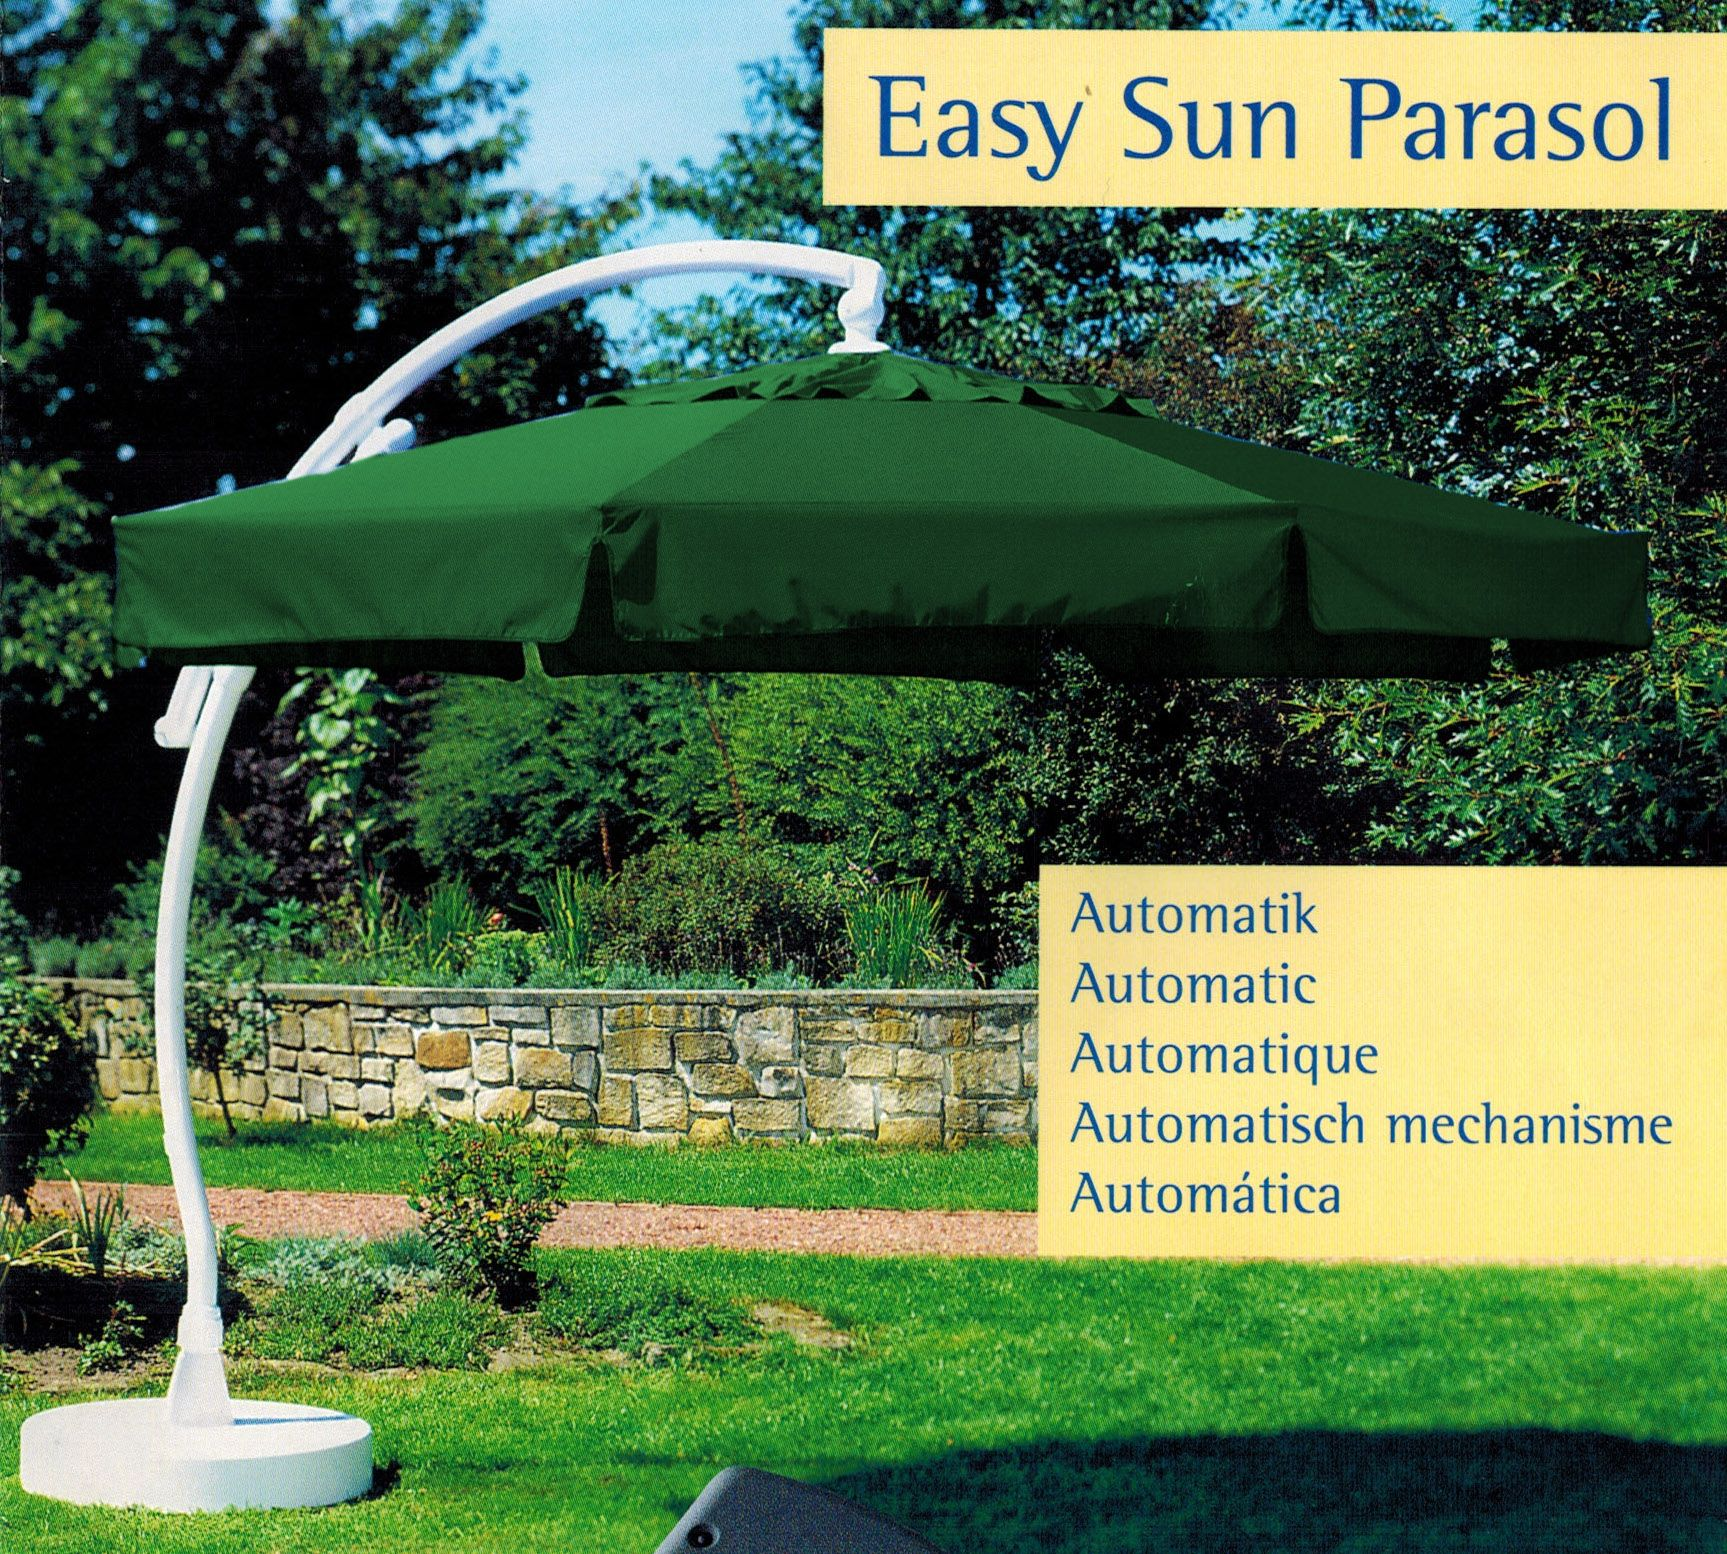 sun garden easy sun parasol ampelschirm 350 8 sonnenschirm automatik gr n blau ebay. Black Bedroom Furniture Sets. Home Design Ideas